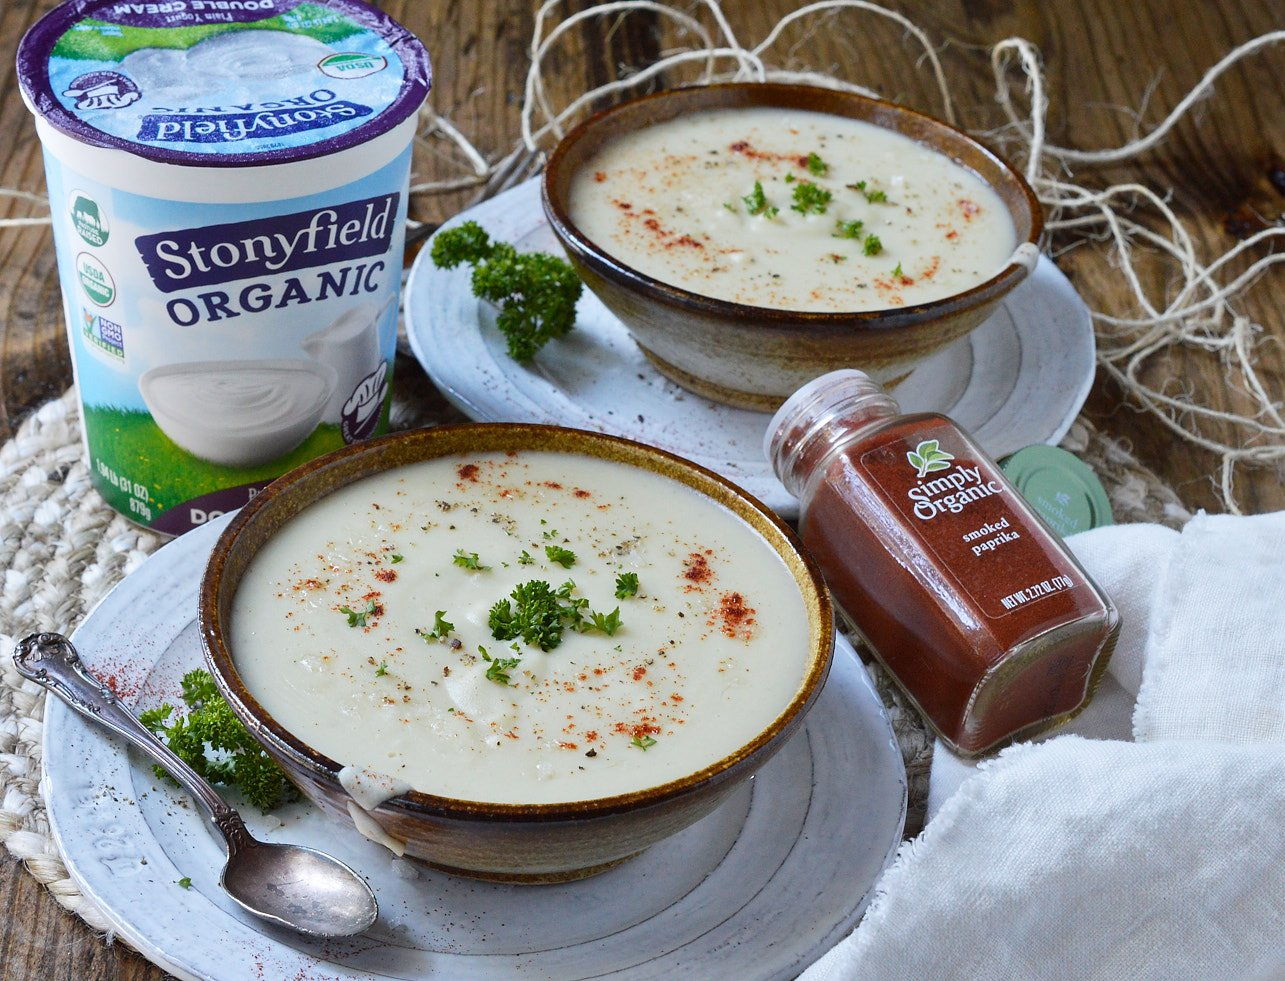 Make this Creamy Roasted Garlic Parsnip Soup Recipe to warm you up on chilly Winter days. Just 5 ingredients and about 30 minutes to make this healthy meal that is perfect for a vegetarian dinner!